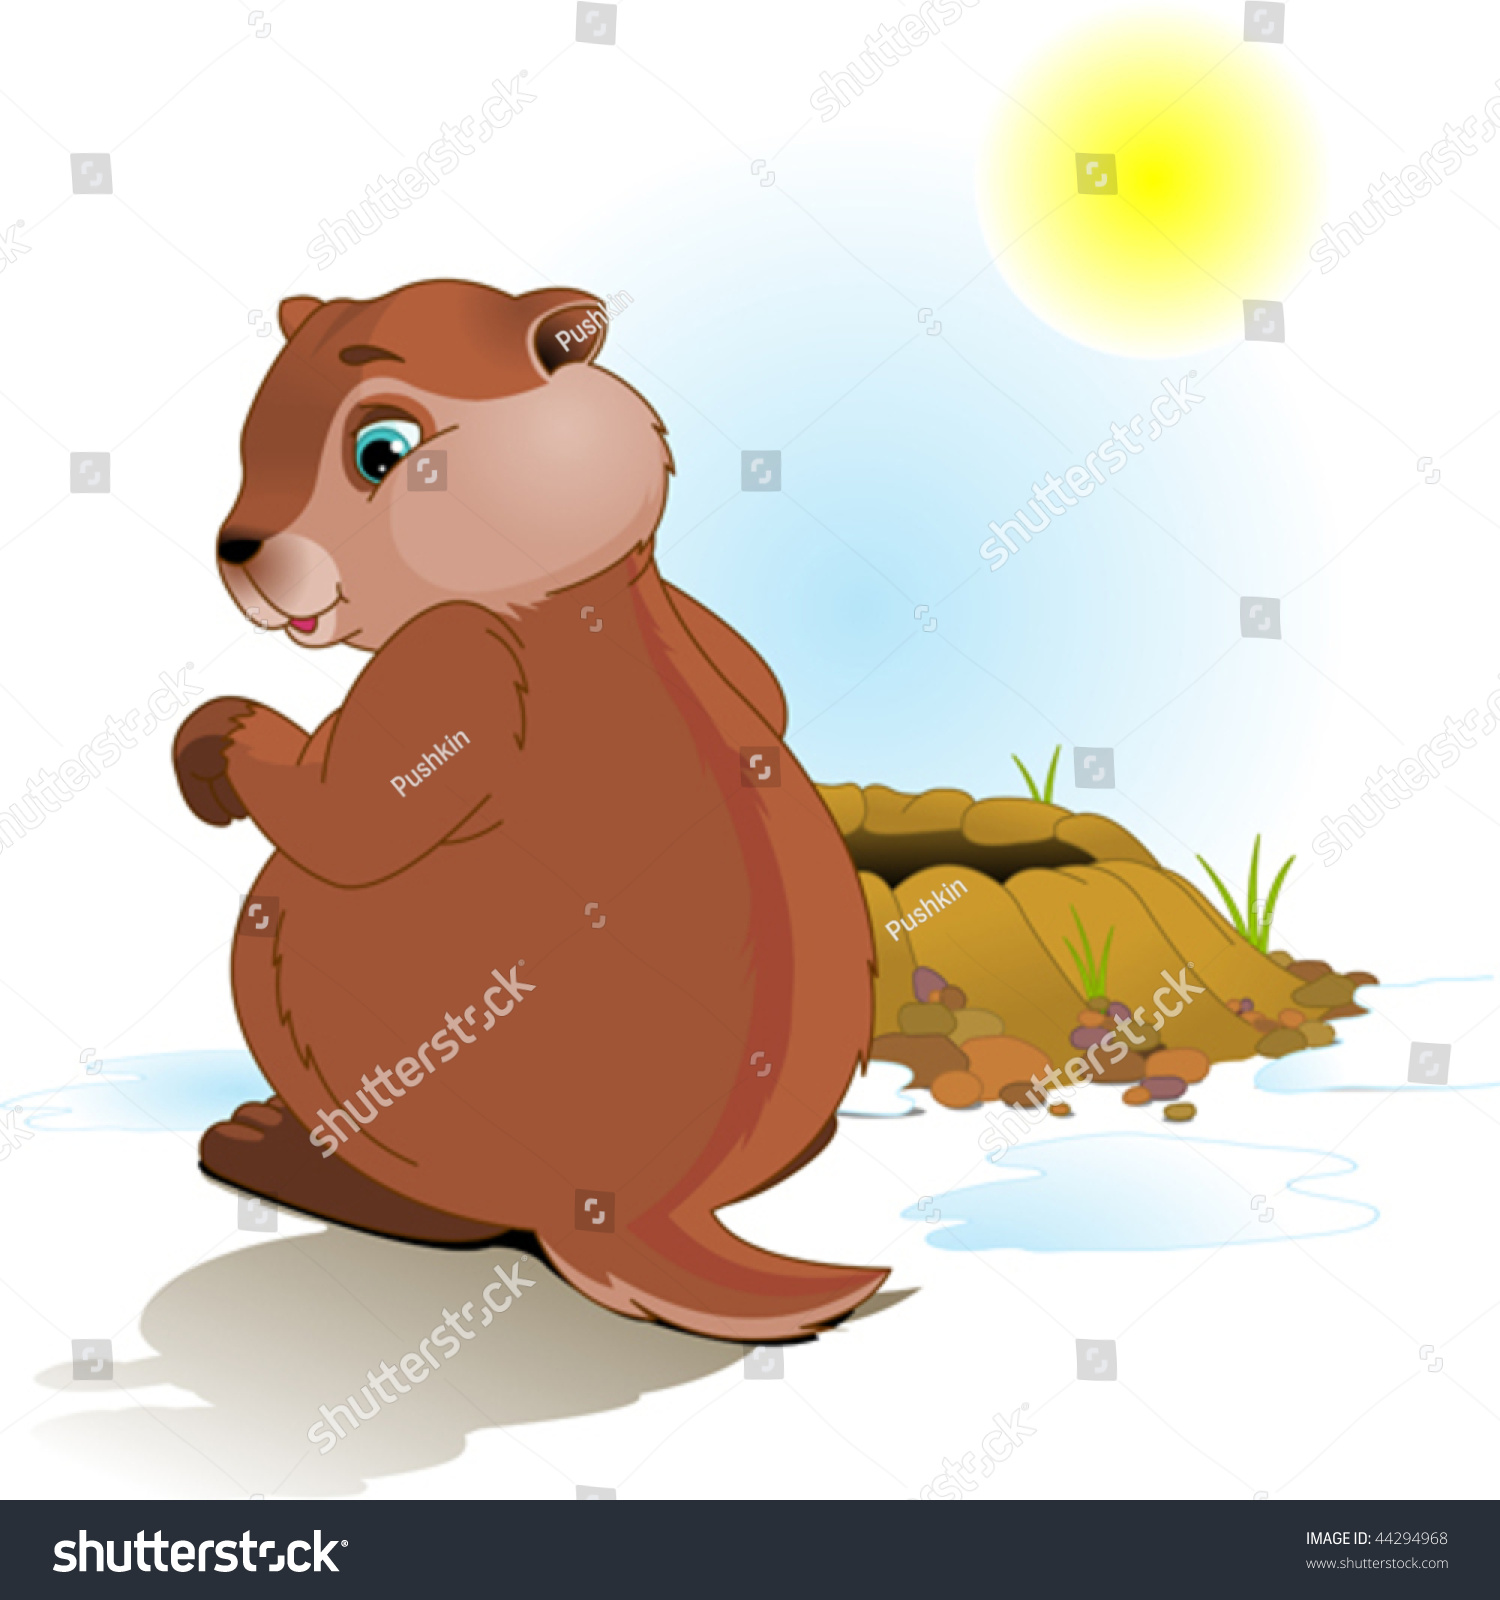 Illustration For Groundhog Day Groundhog Looking At His